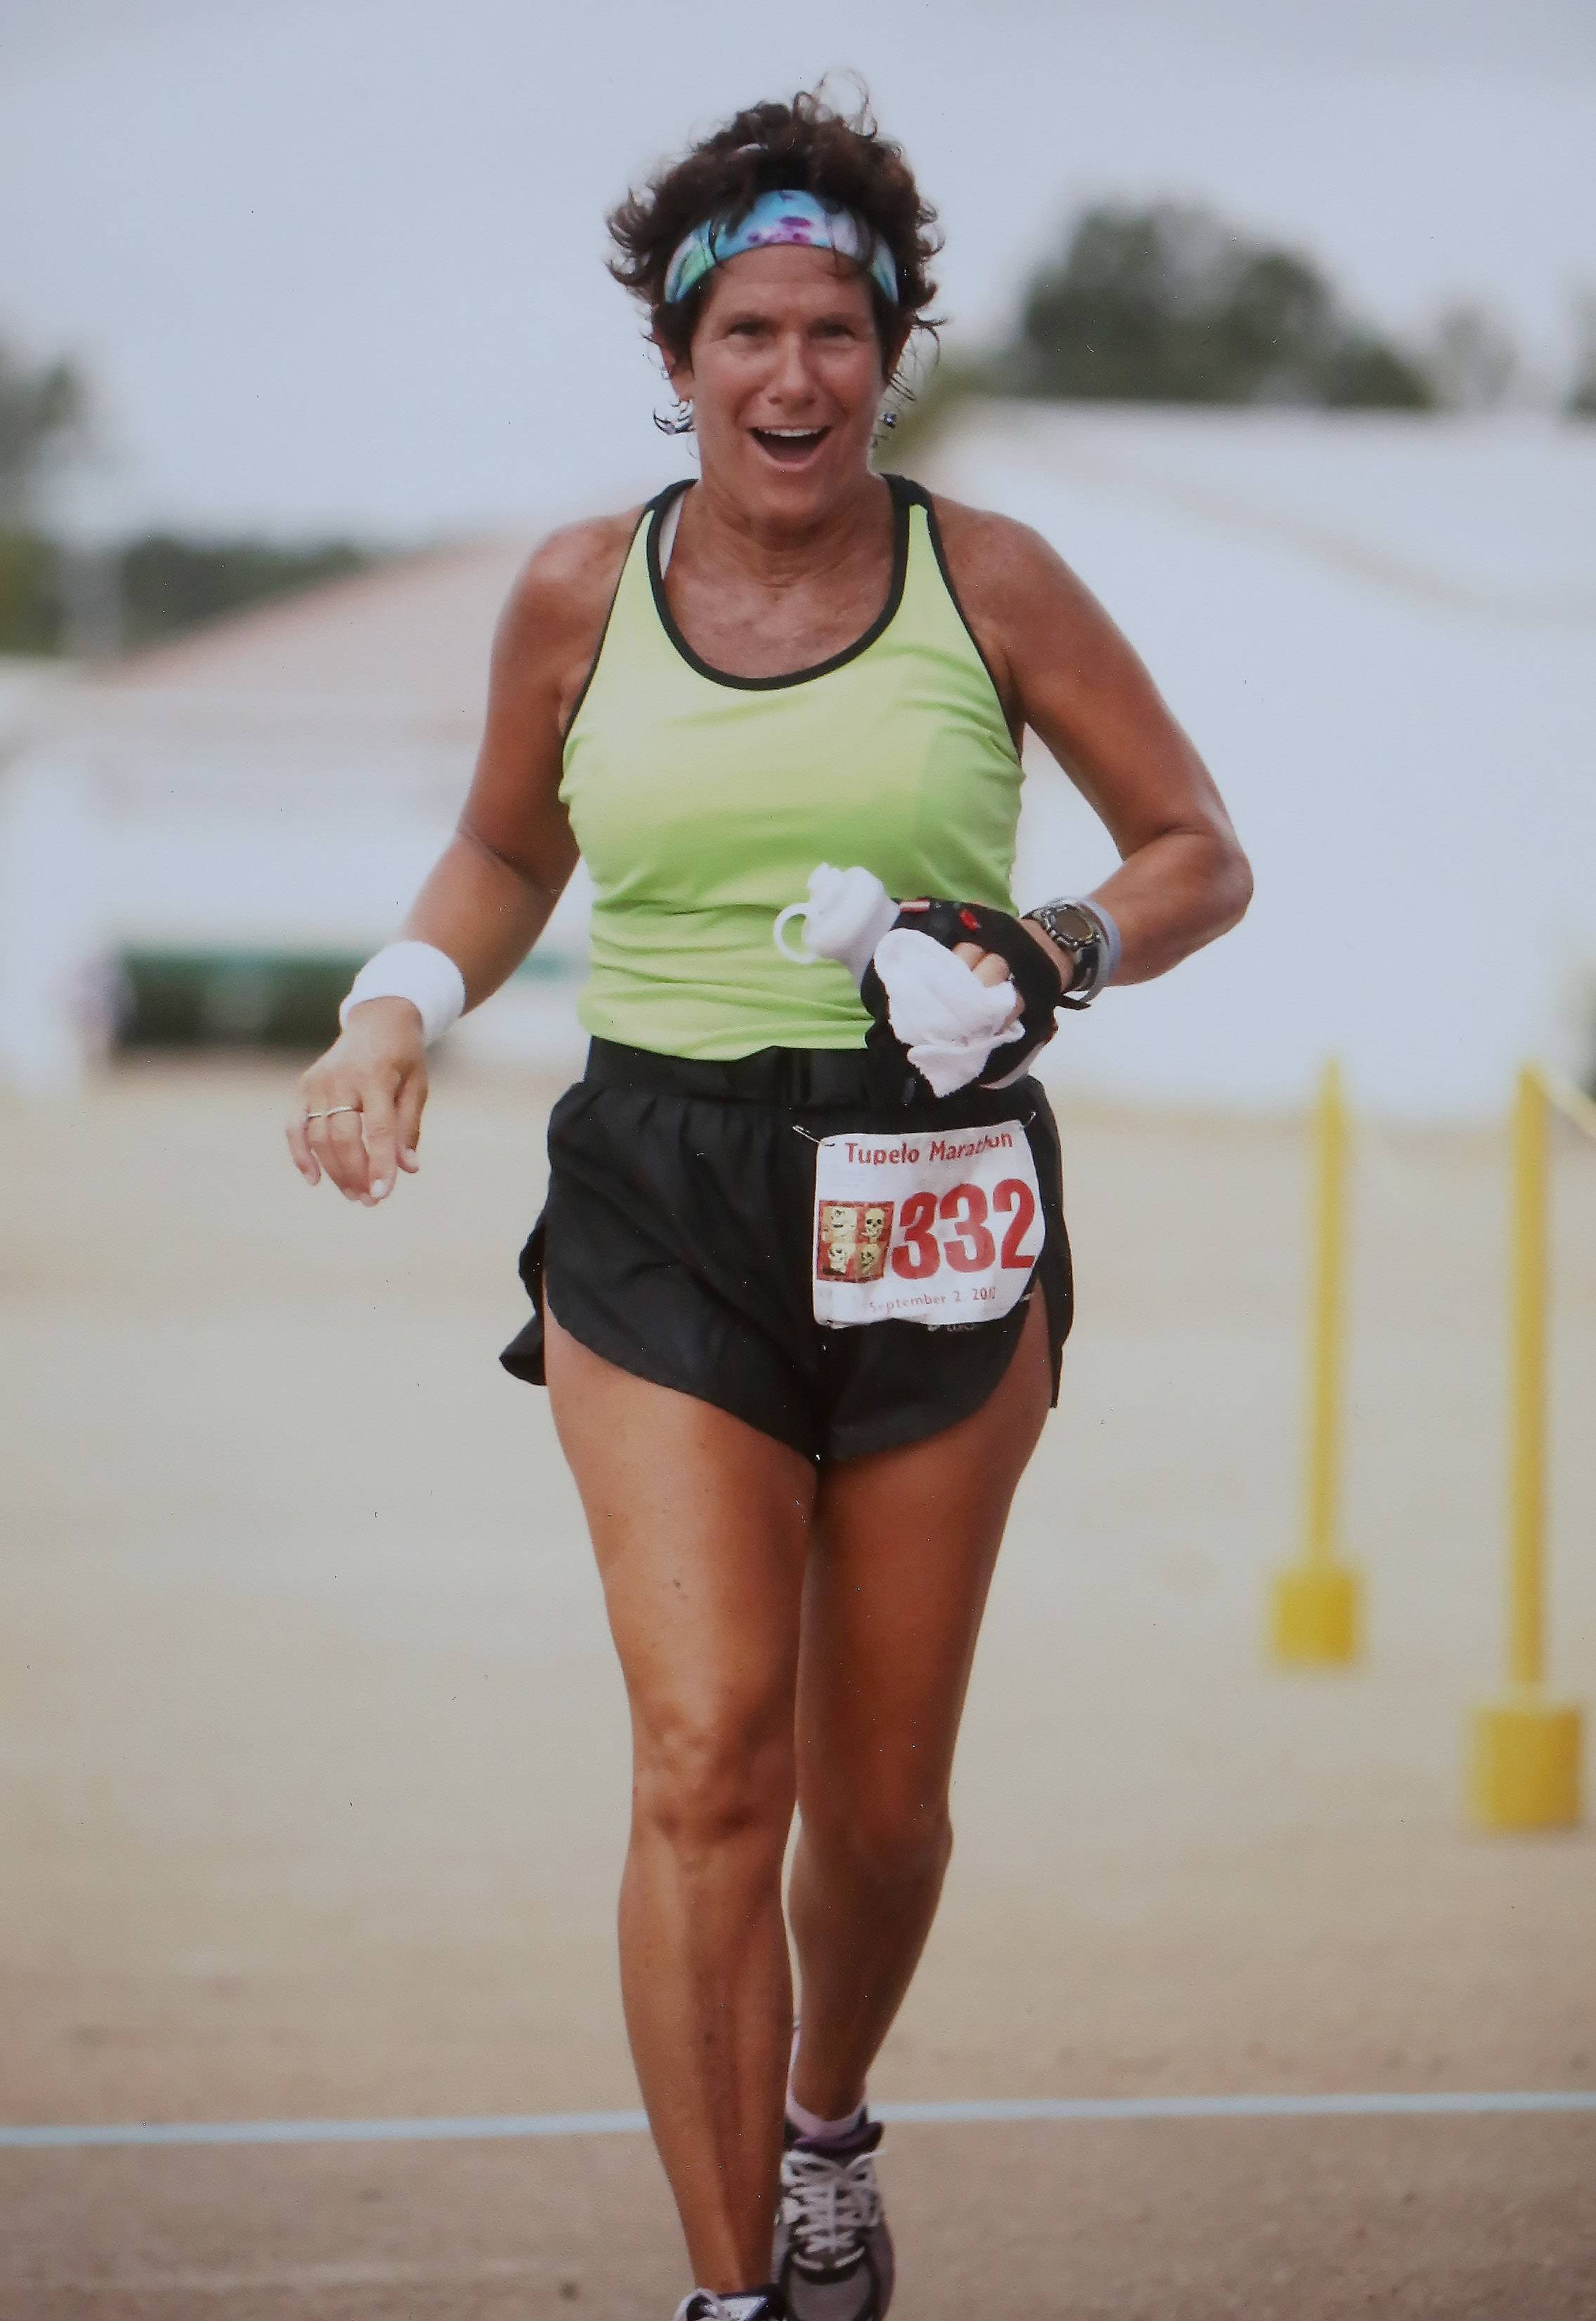 Libertyville runner Mary Ann Zemla competes in a marathon in Tupelo, Miss., in 2012. Zemla has run marathons in all 50 states, 74 marathons in all.